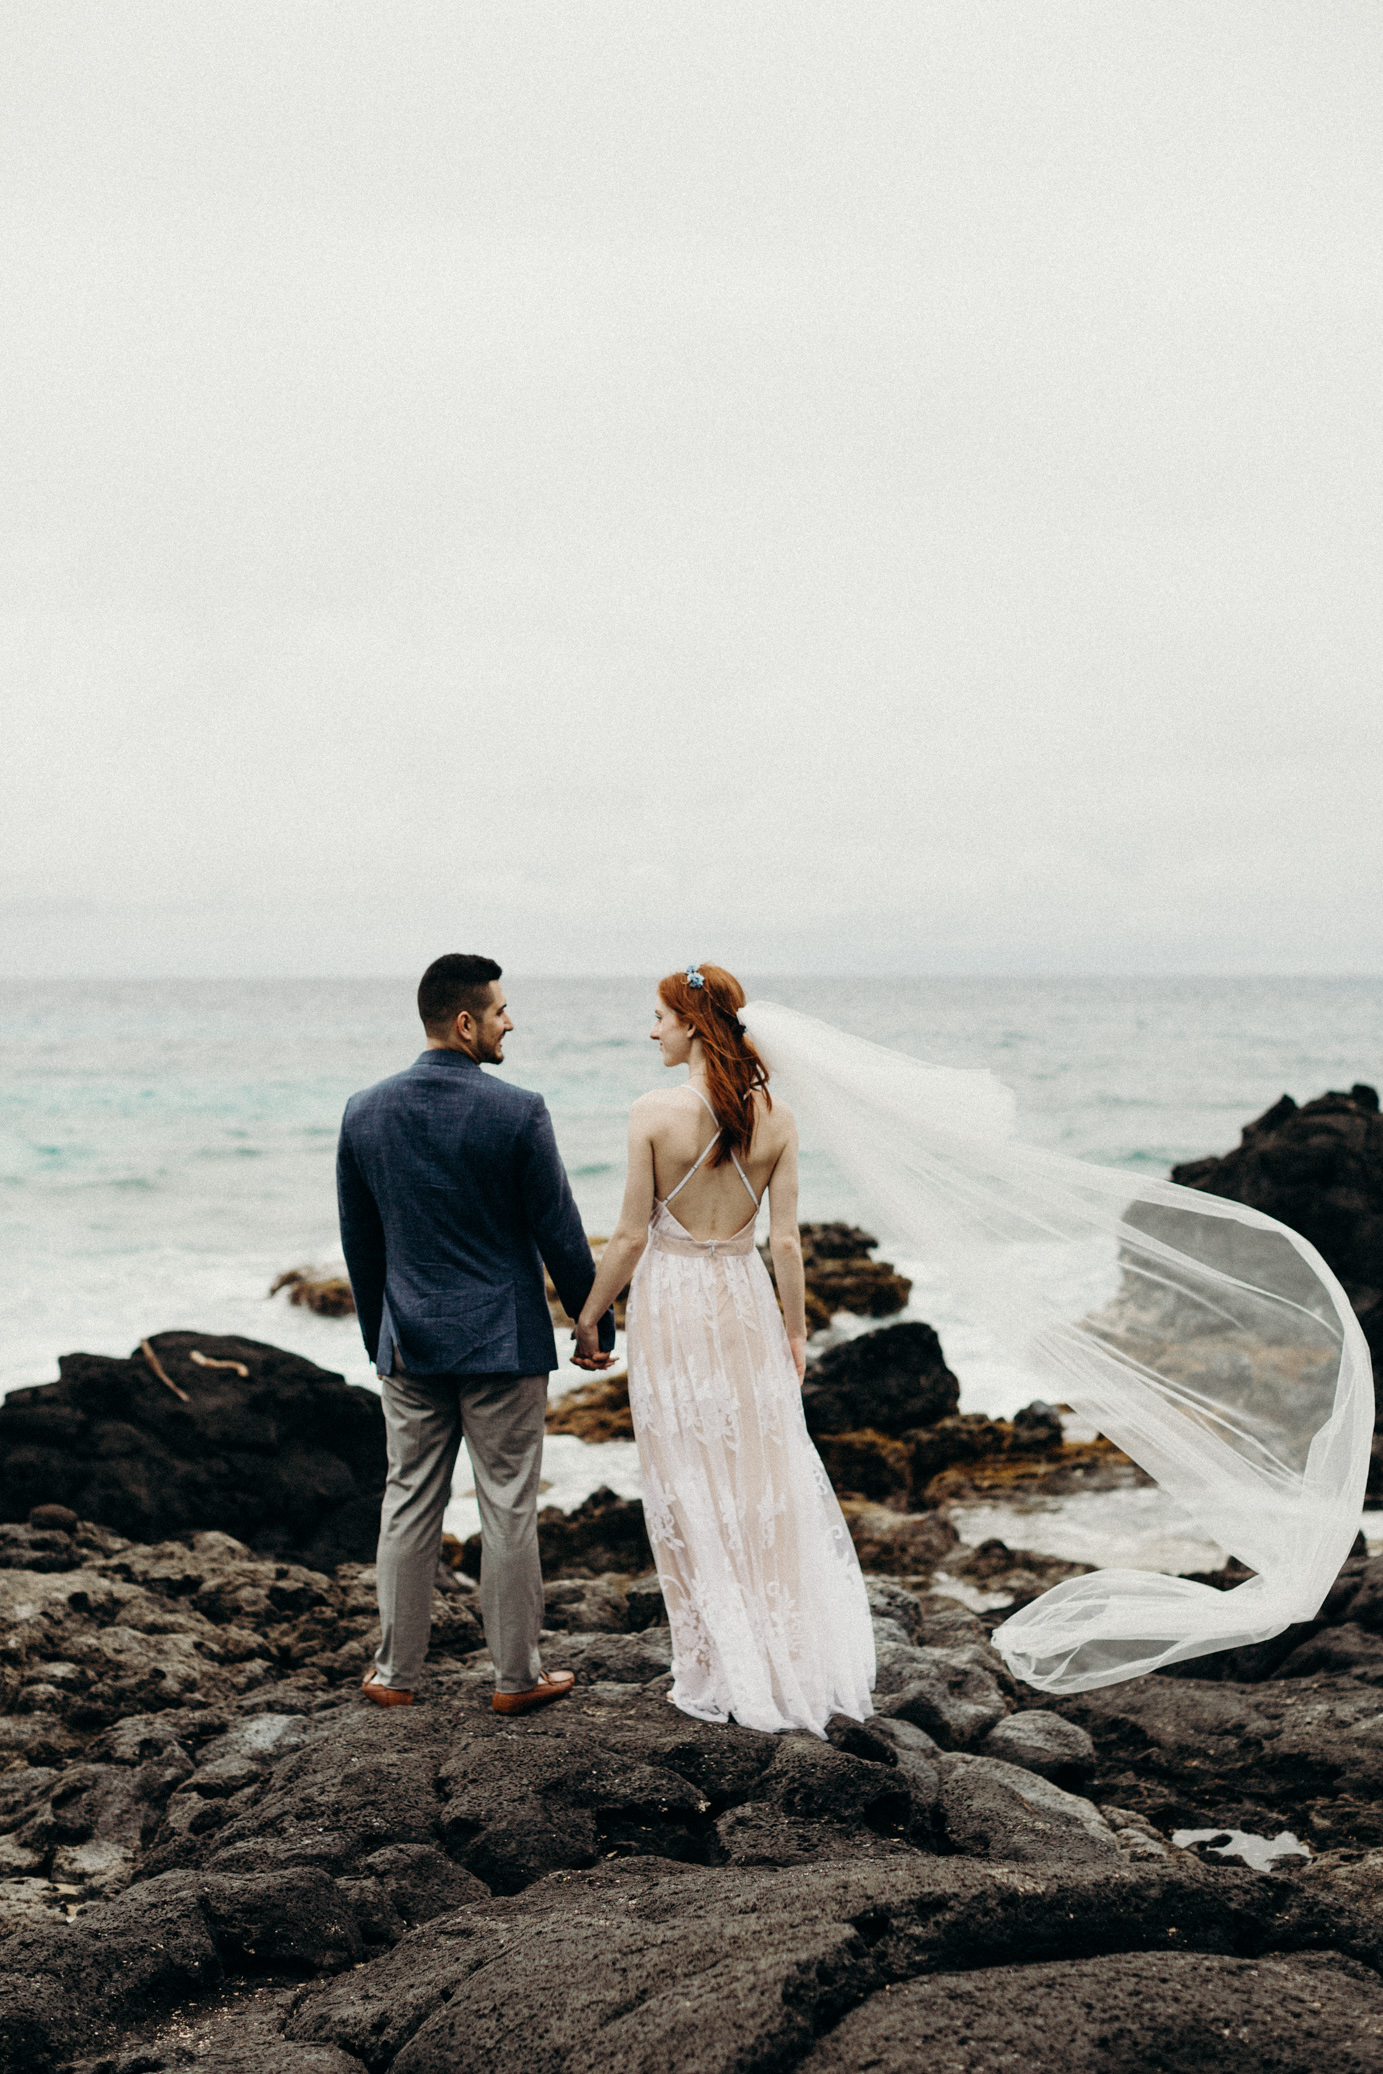 hawaii-wedding-photographer-keani-bakula-21.jpg